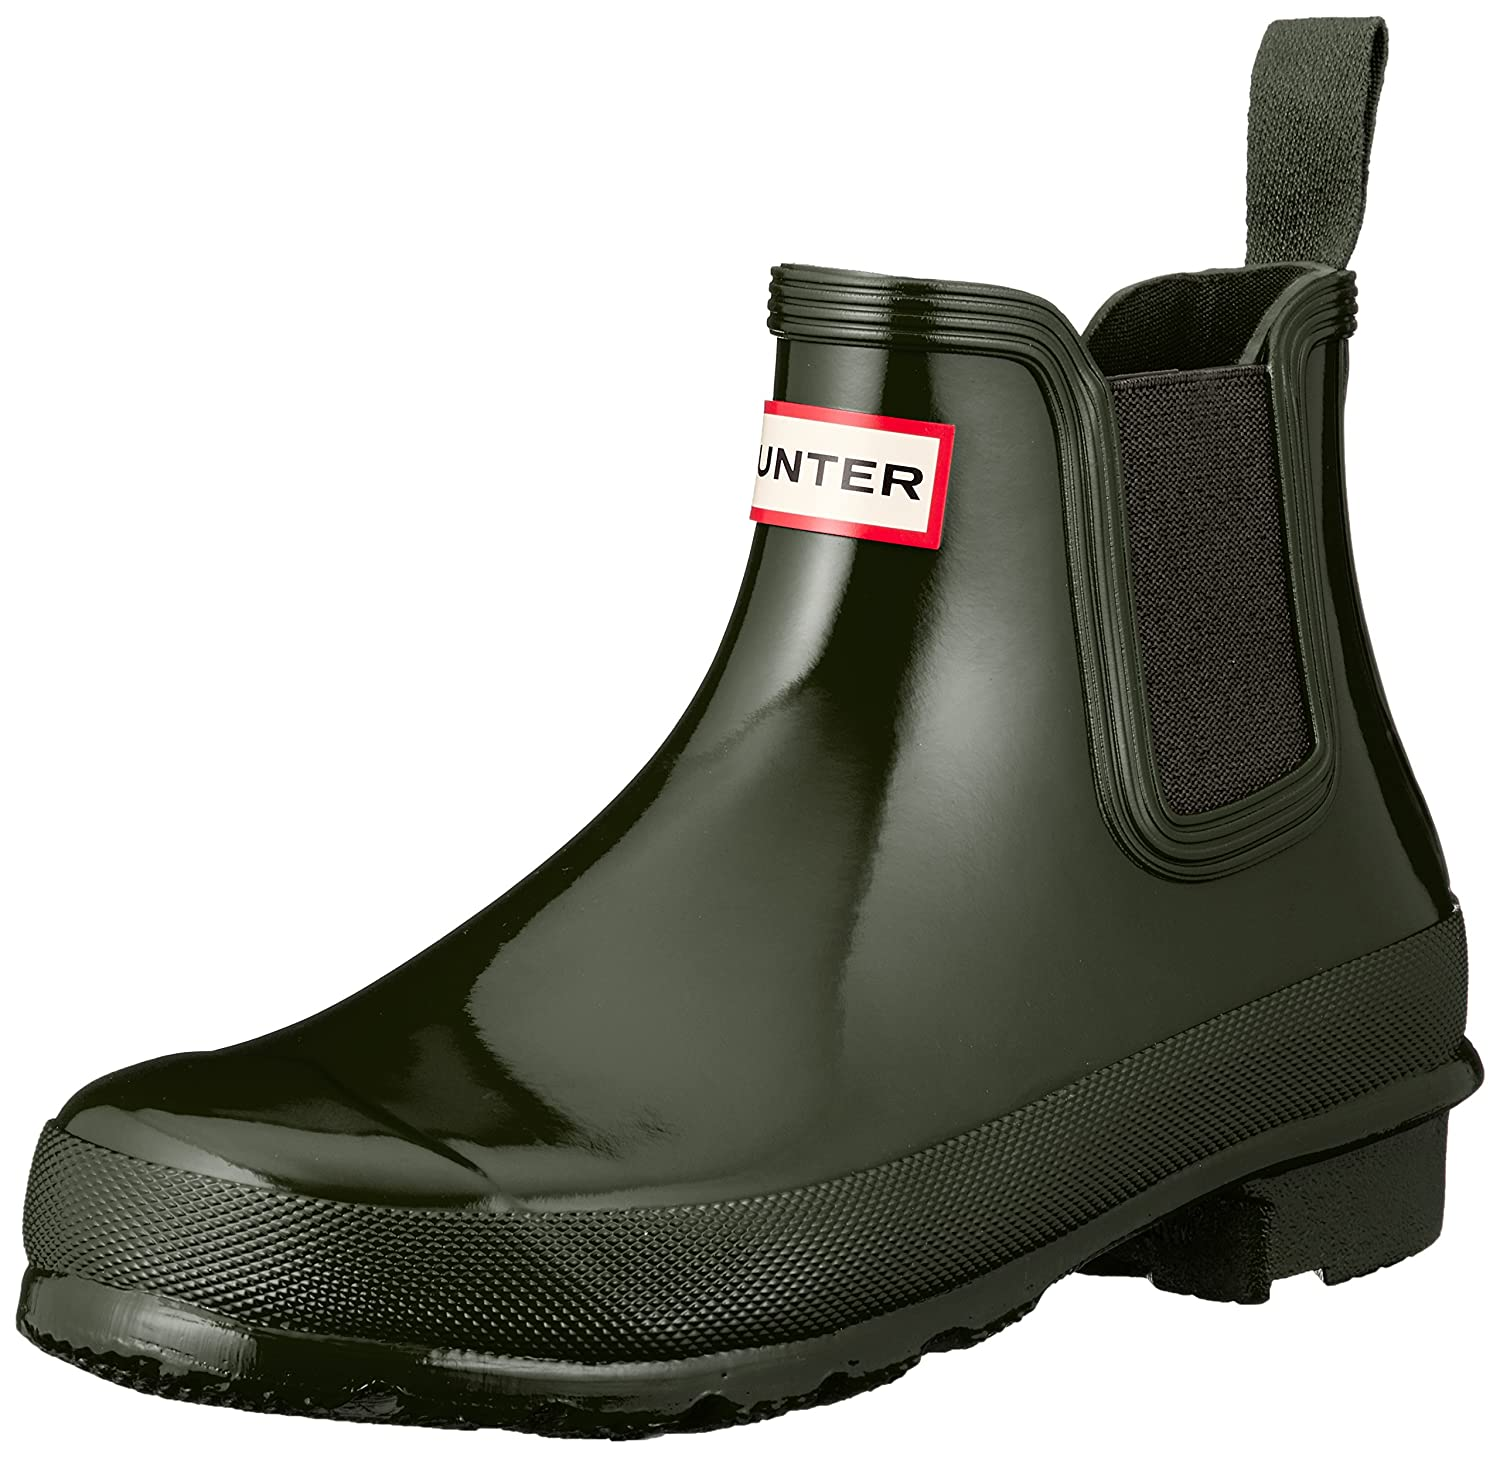 Hunter Women's Original Chelsea High-Top Rubber Rain Boot B079Y6ZWR2 5 B(M) US|Dark Olive